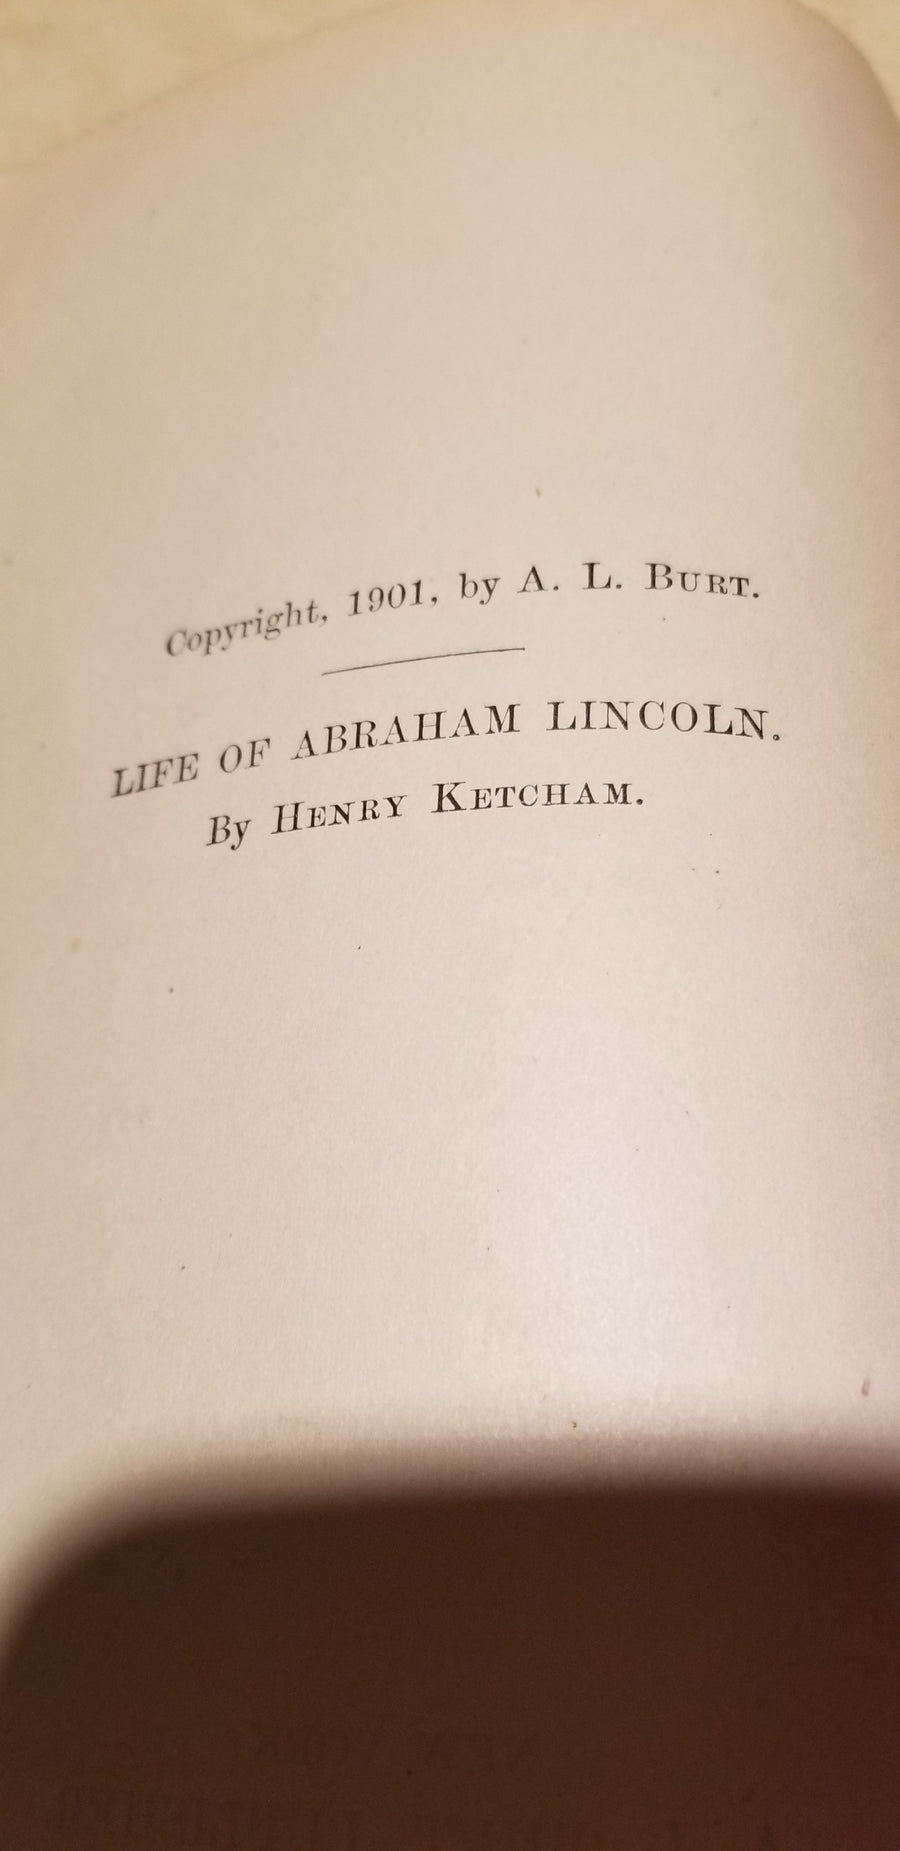 The life of Abraham Lincoln, mecham, 1901